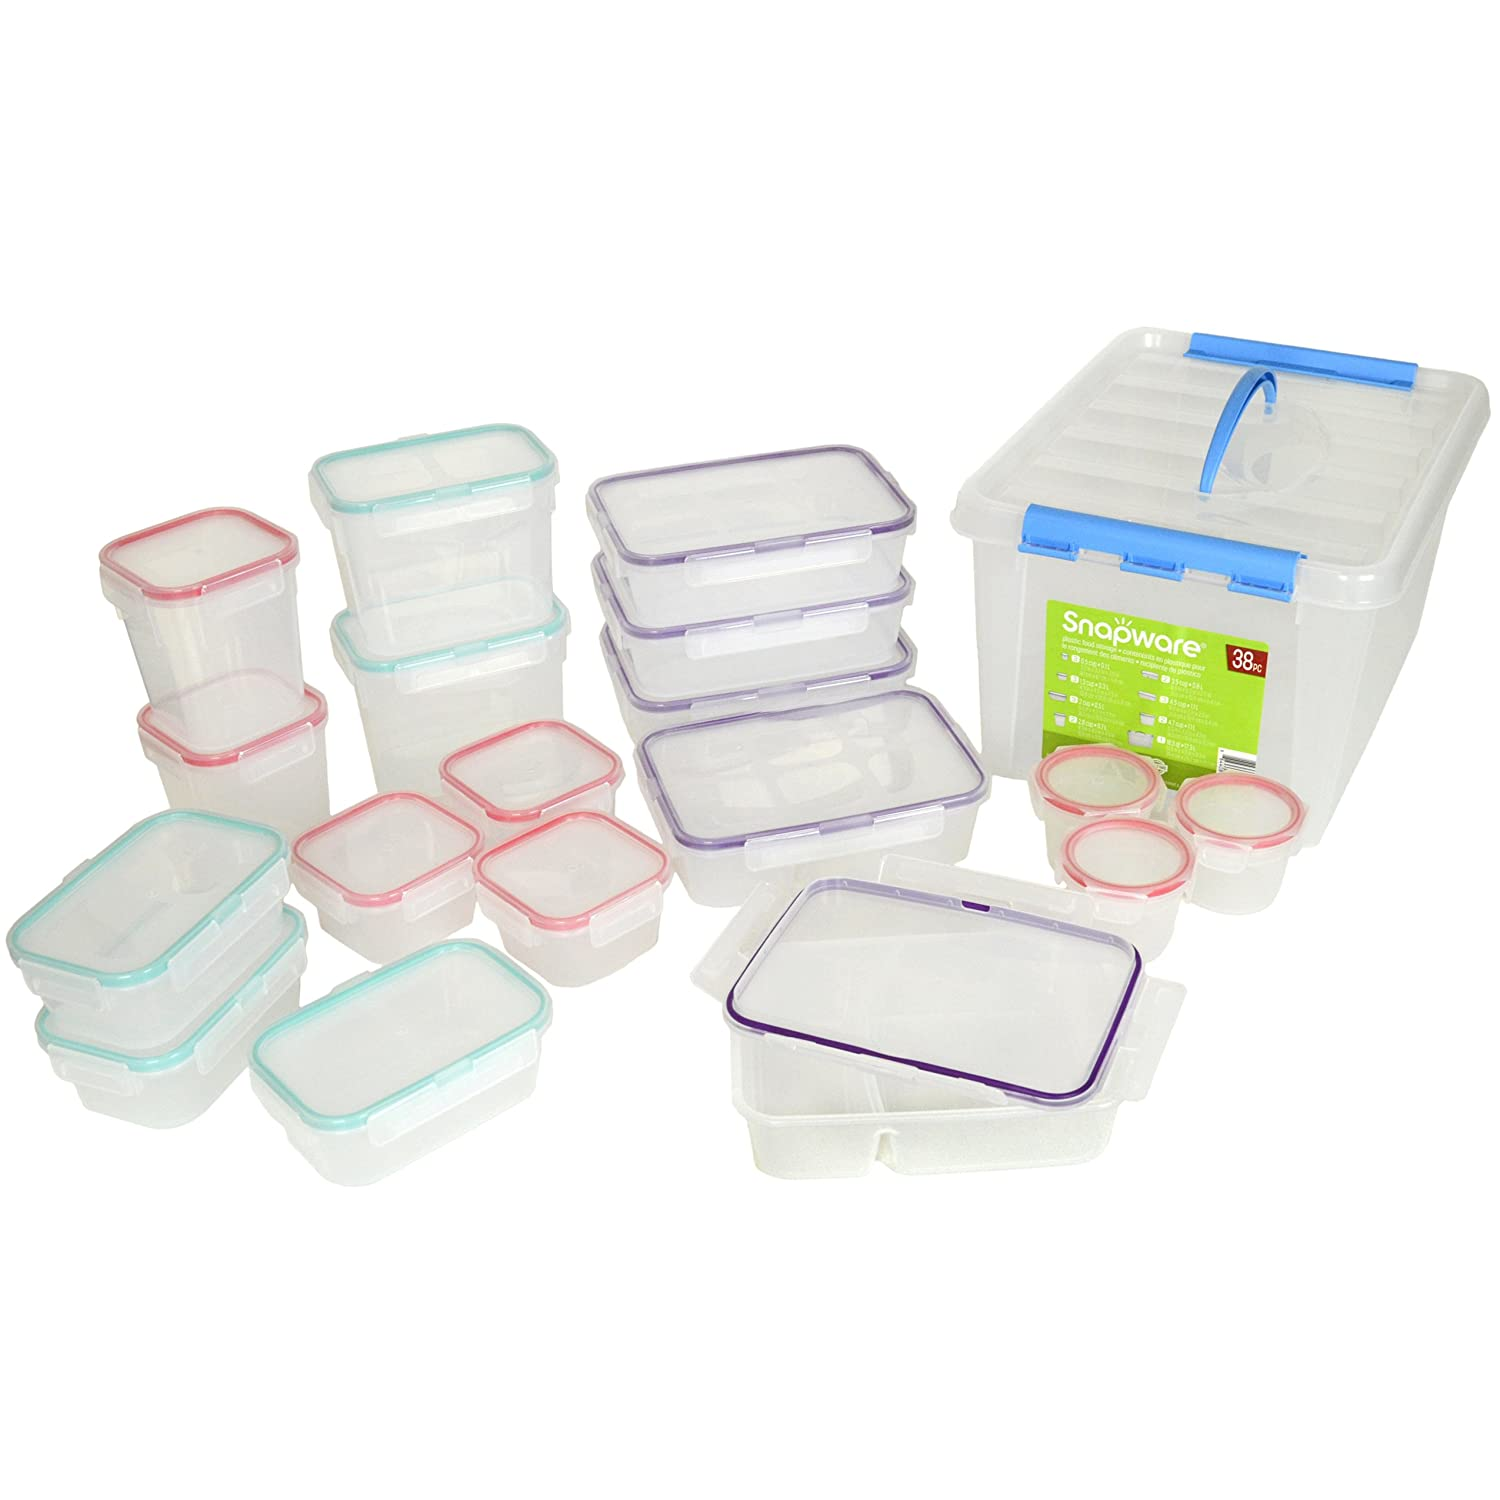 BPA Free Snapware 38 Piece Airtight Plastic Storage Container Set:  Amazon.co.uk: Kitchen U0026 Home